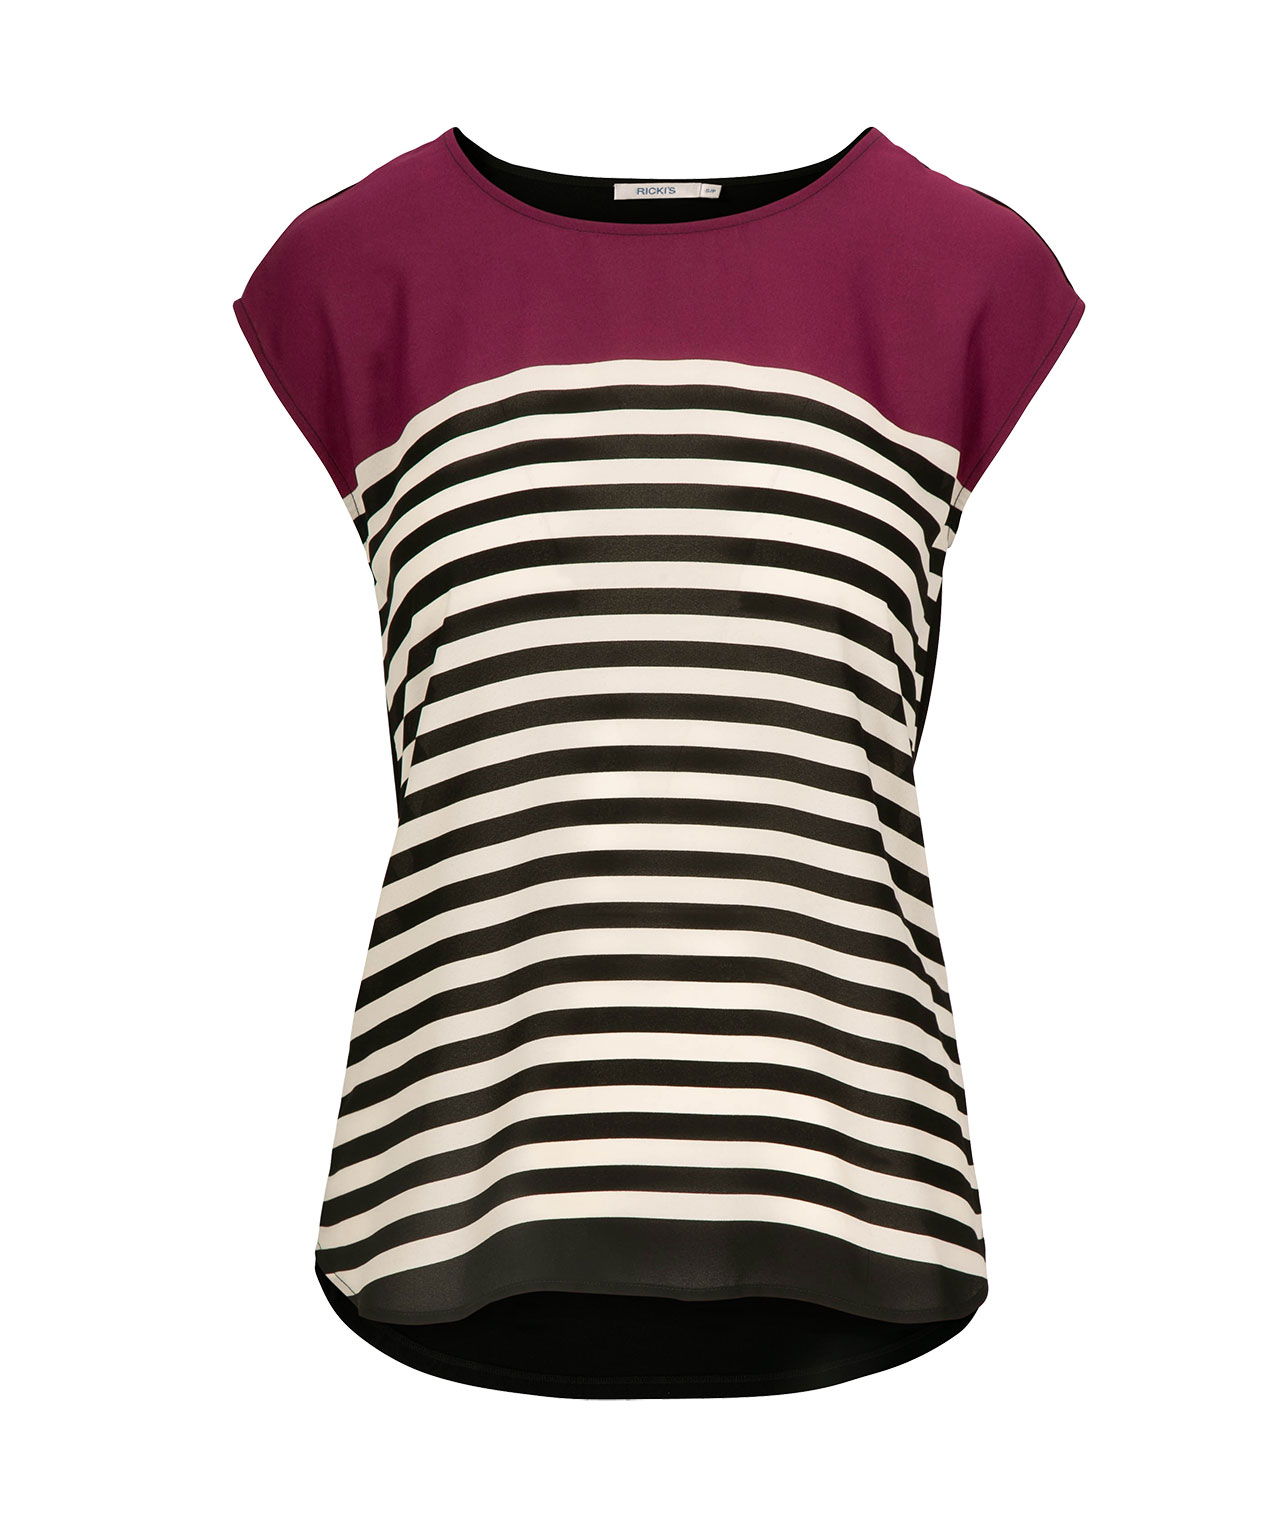 Extended Sleeve Mixed Media Top, Black Cherry/Black/Pearl, hi-res